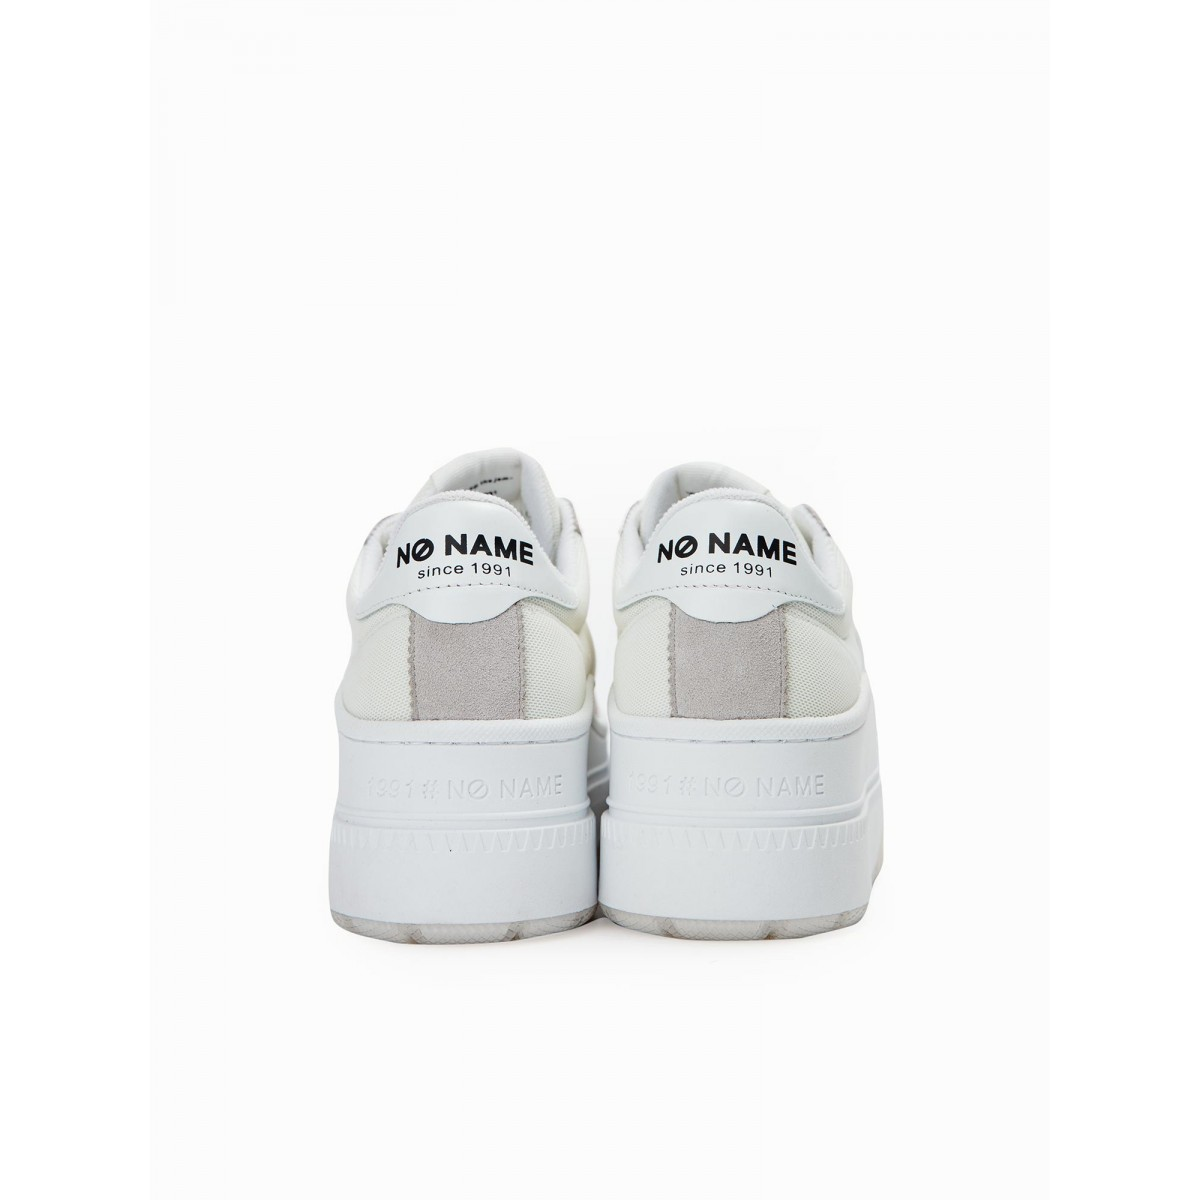 No Name JUMP TENNIS - MESH/SUEDE - WHITE/WHITE